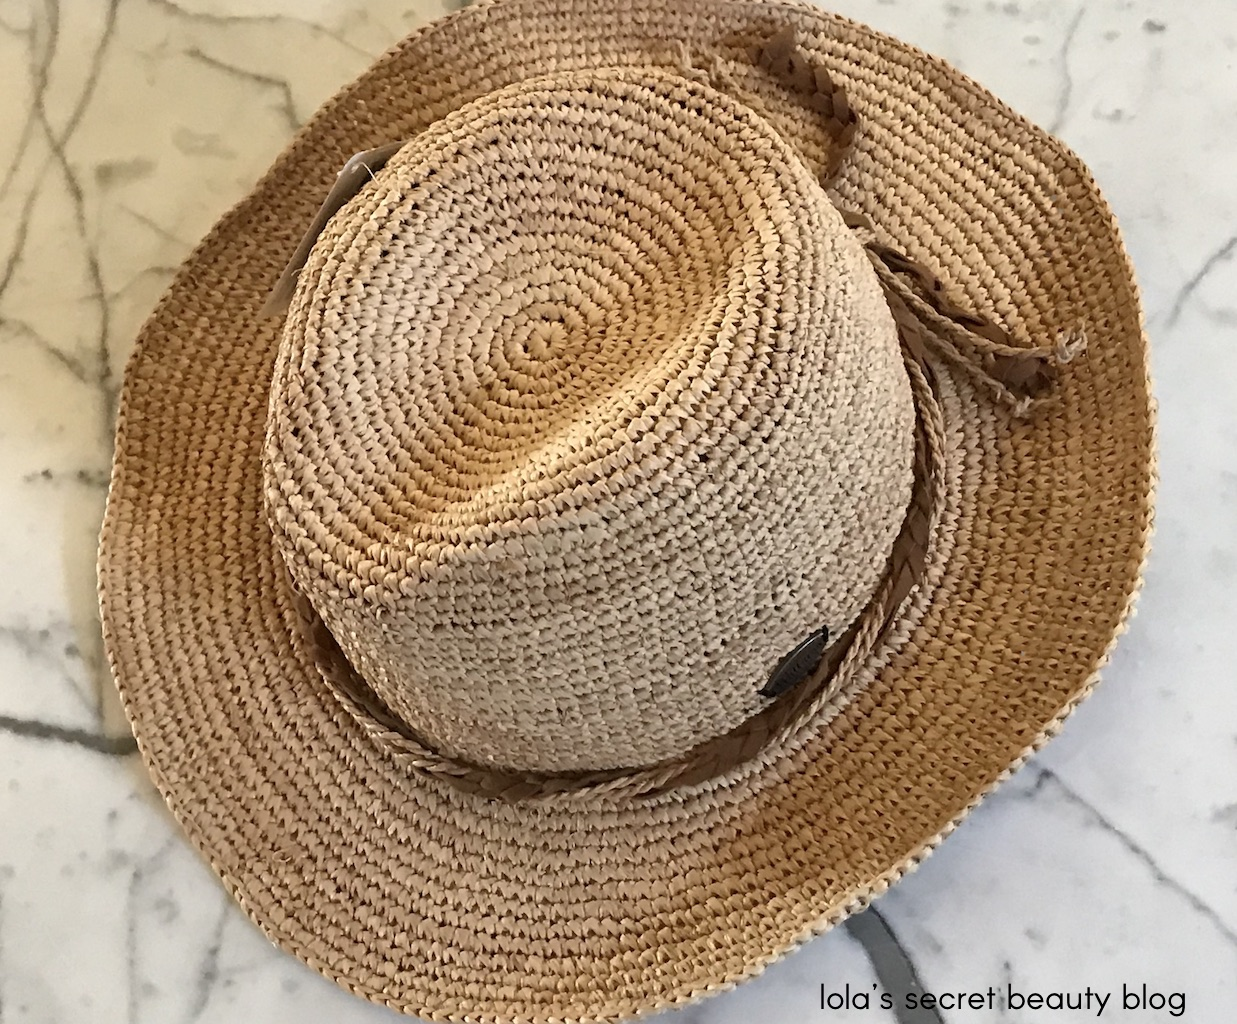 df19a29421434 Wallaroo Hailey Hat in Natural ( 56.00 from Wallaroo Hat Company)  Since  all seasons require sunscreen and sun protection